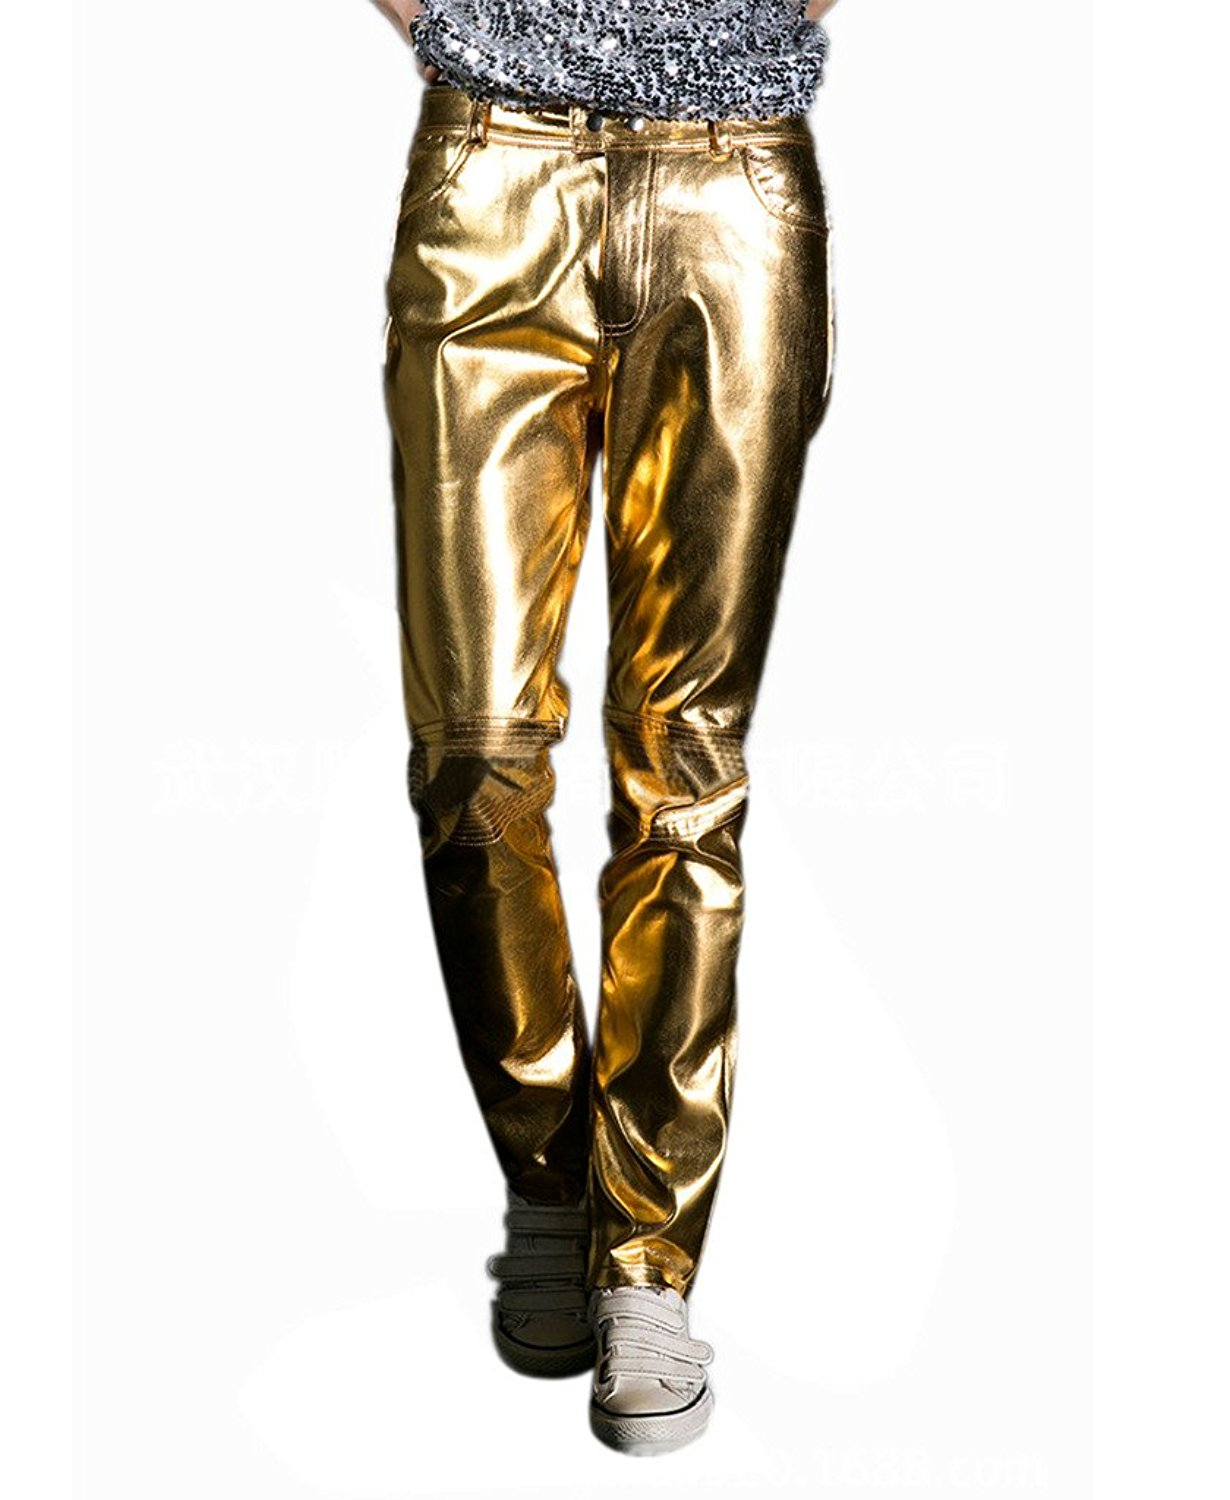 8fd4da5cc4ff1 Dinamit Jeans Girls Shiny Metallic Color Elastic Leggings. null. null. Get  Quotations · CIC Collection Men's Metallic Shiny Jeans